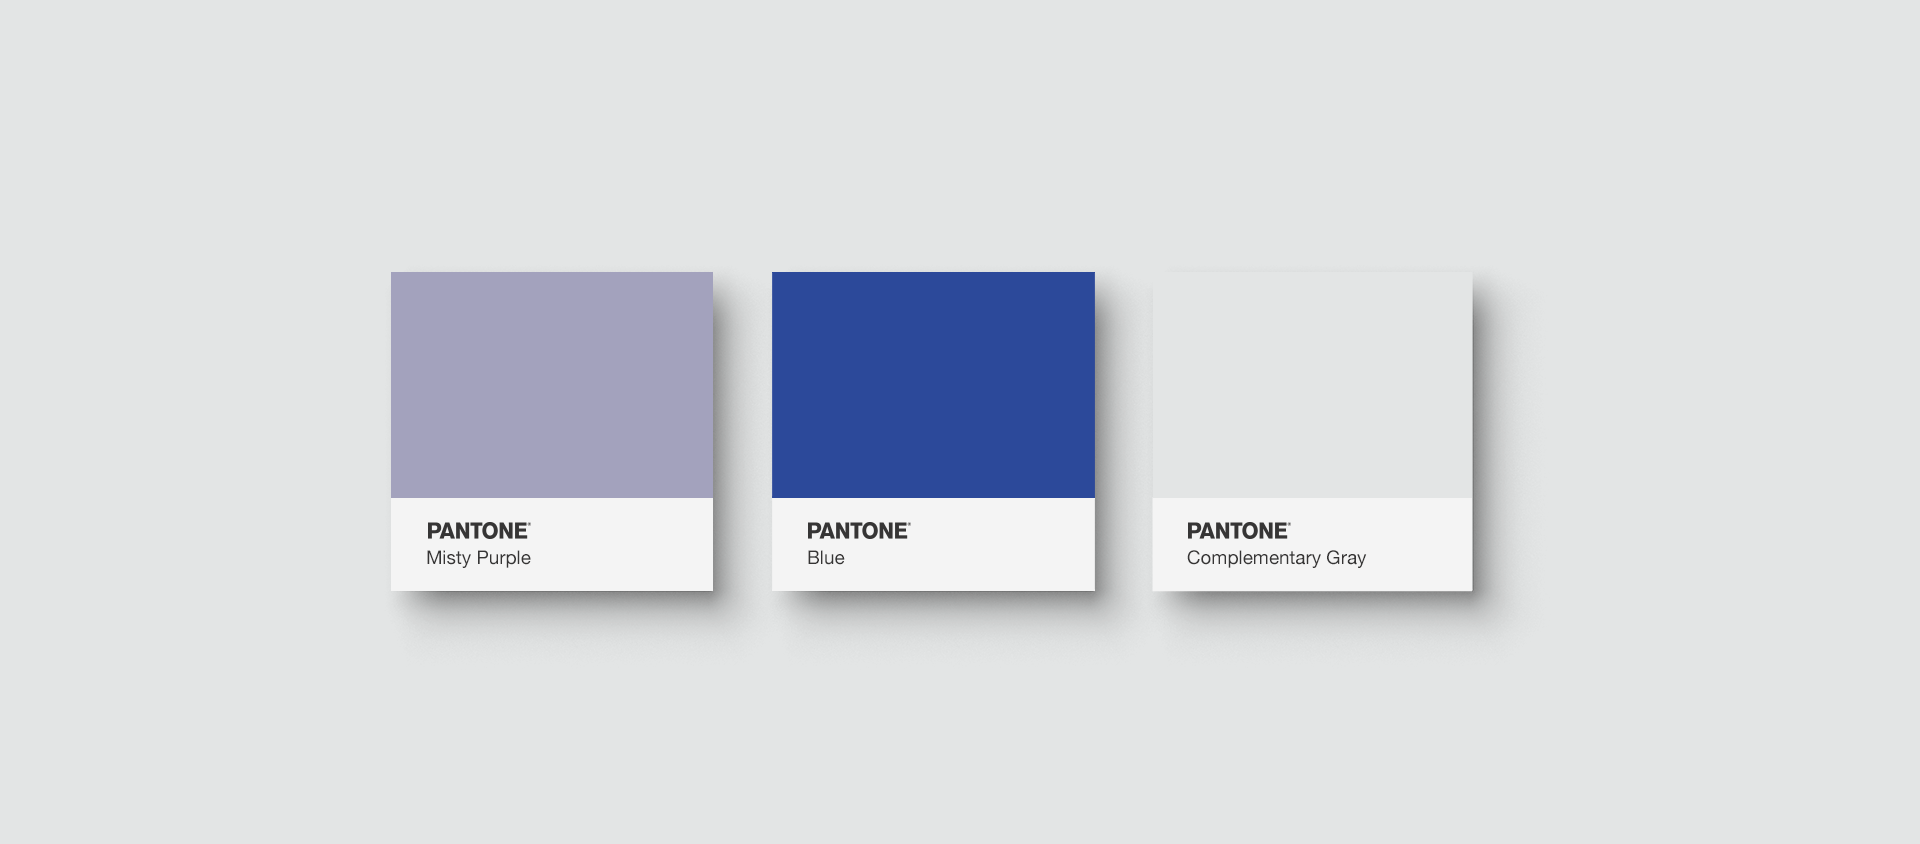 pantone-colors-labcap-yoenpaperland